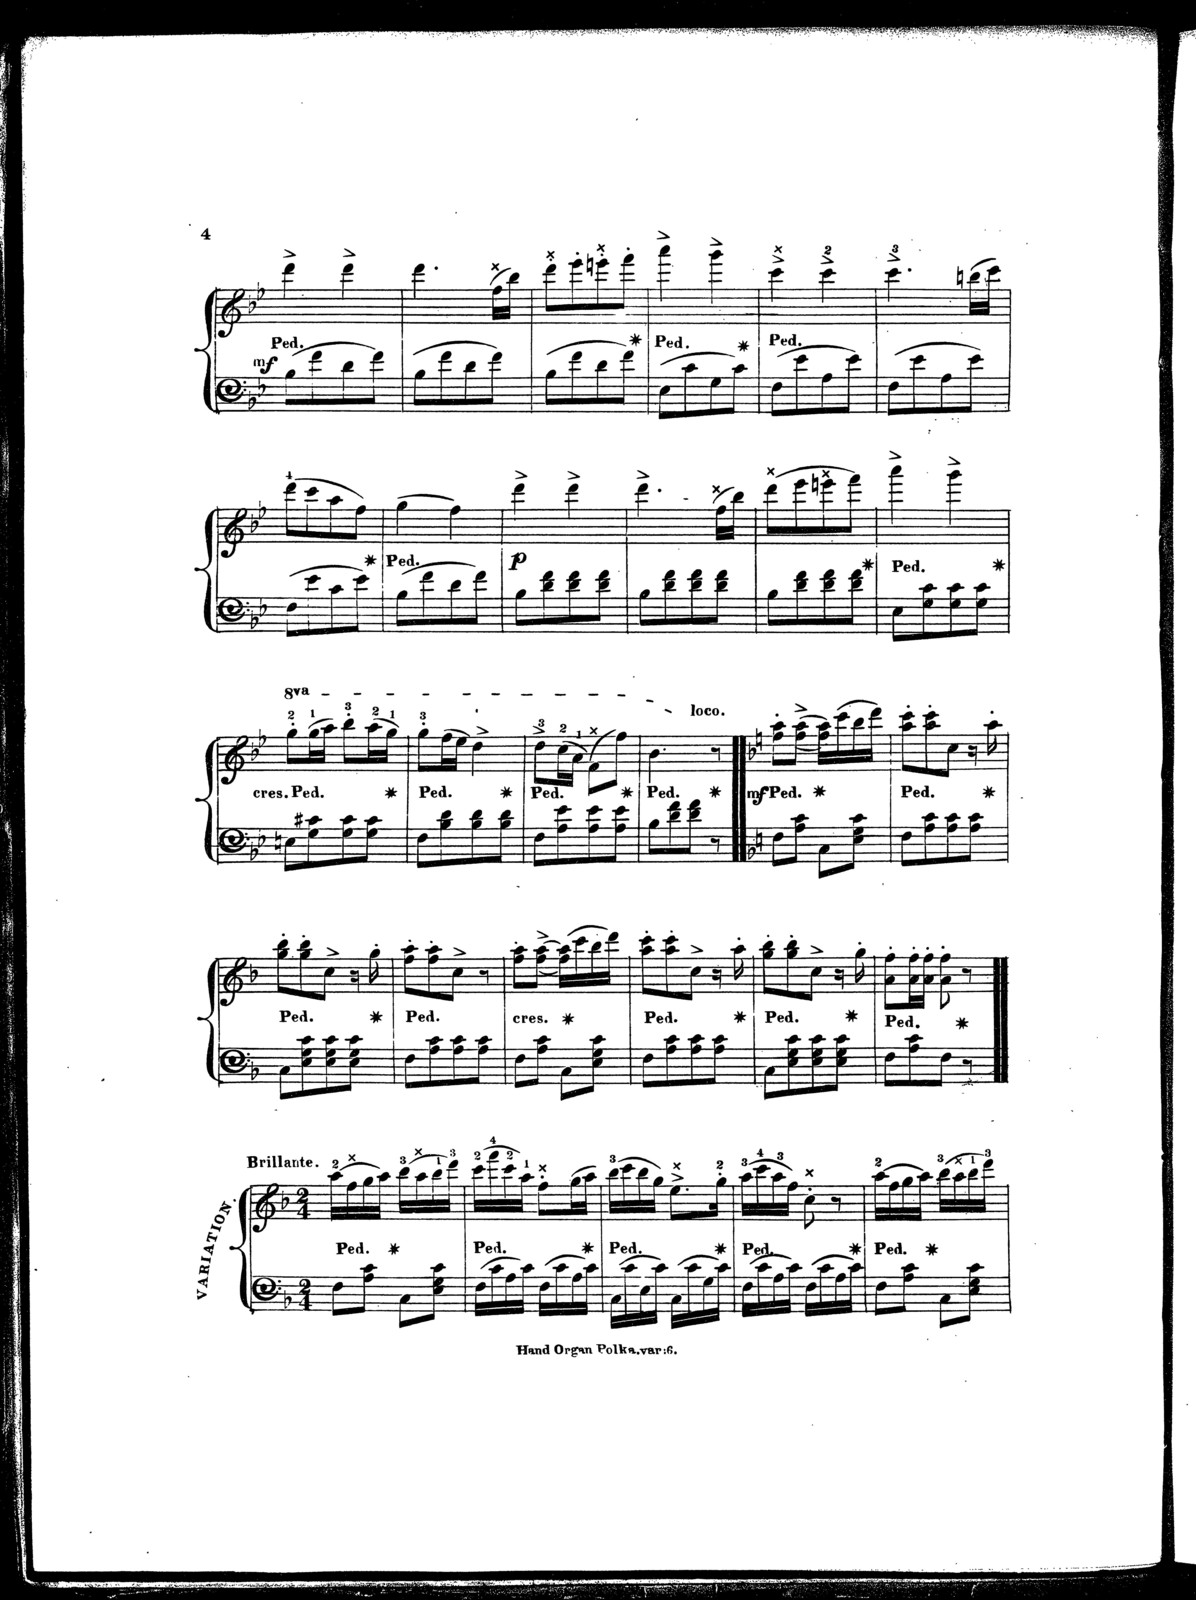 The  hand organ polka, with var. and finale, op. 779